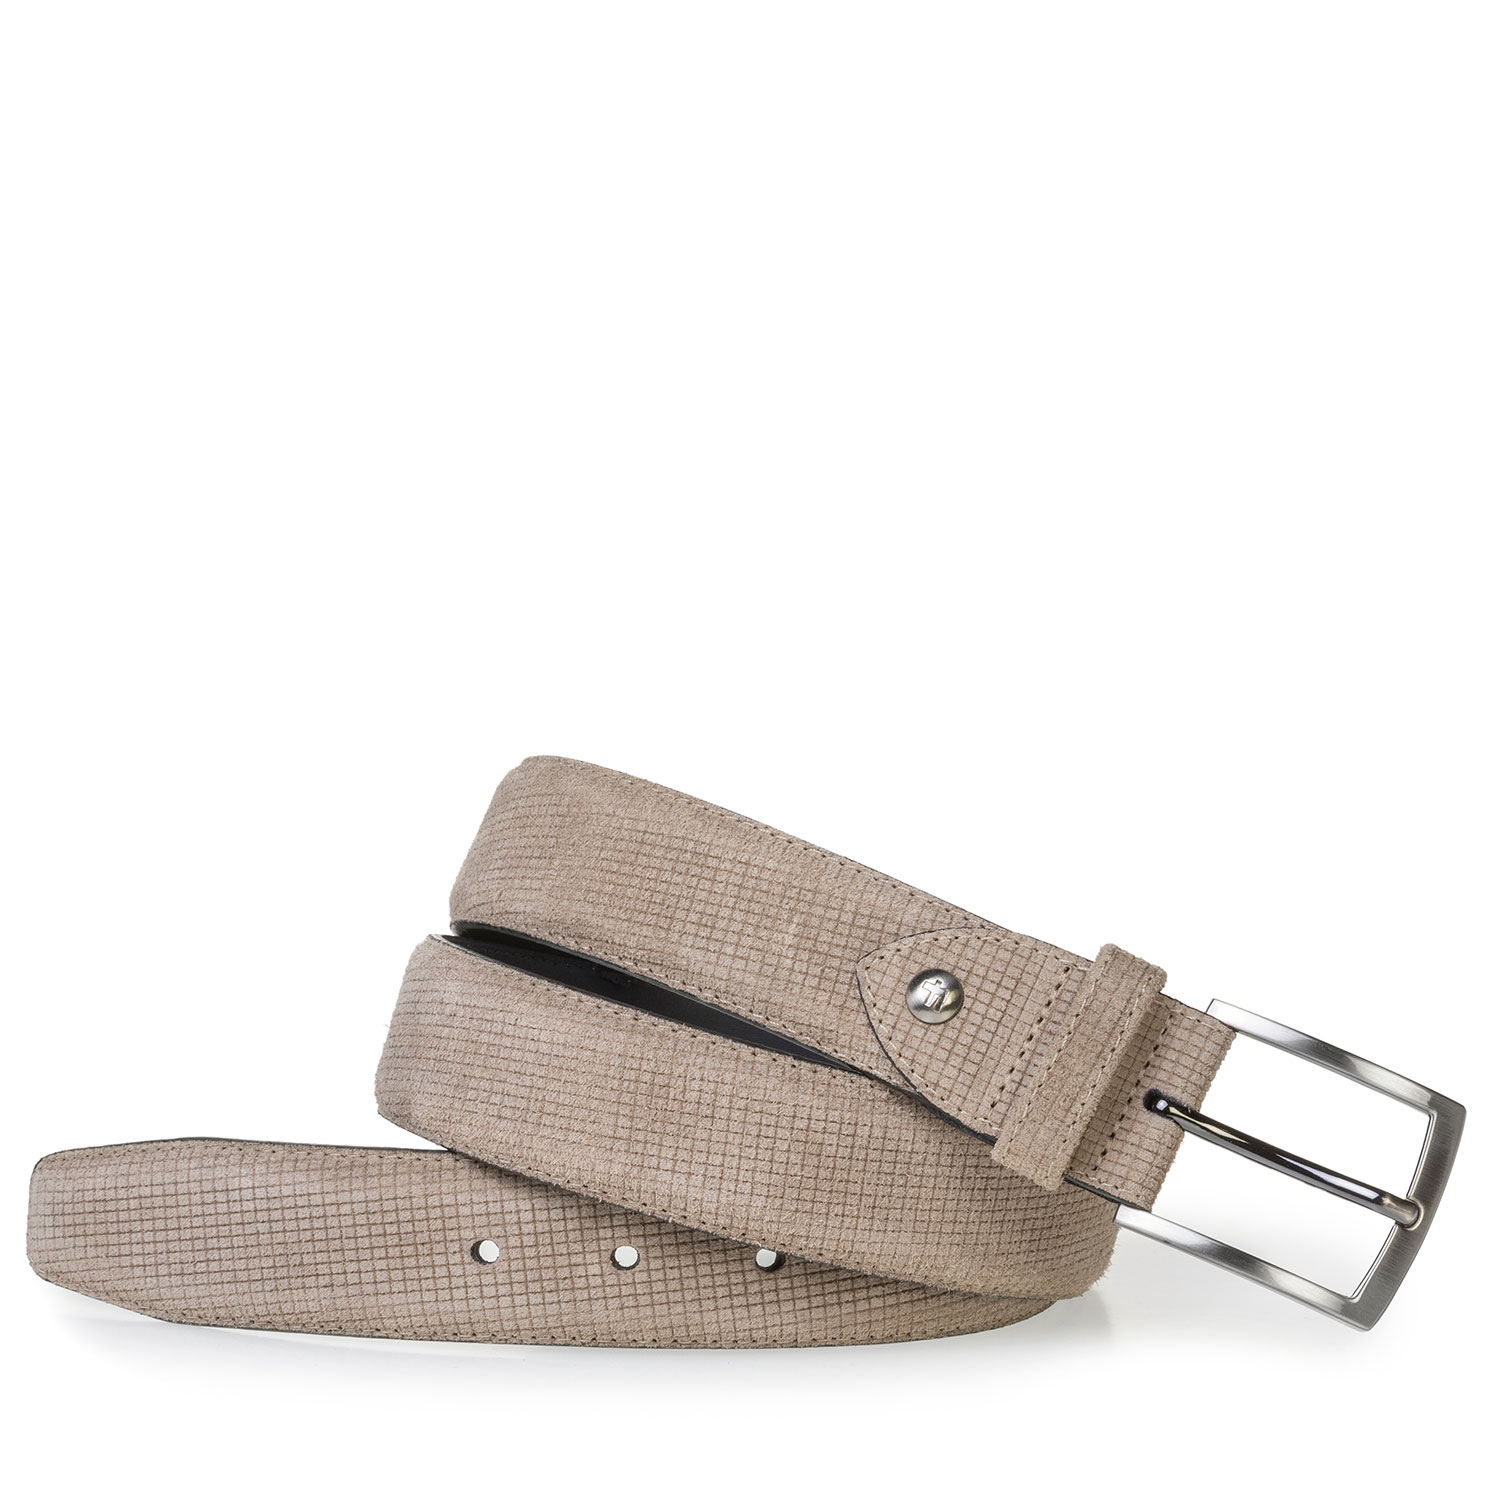 75201/97 - Beige suede leather belt with print